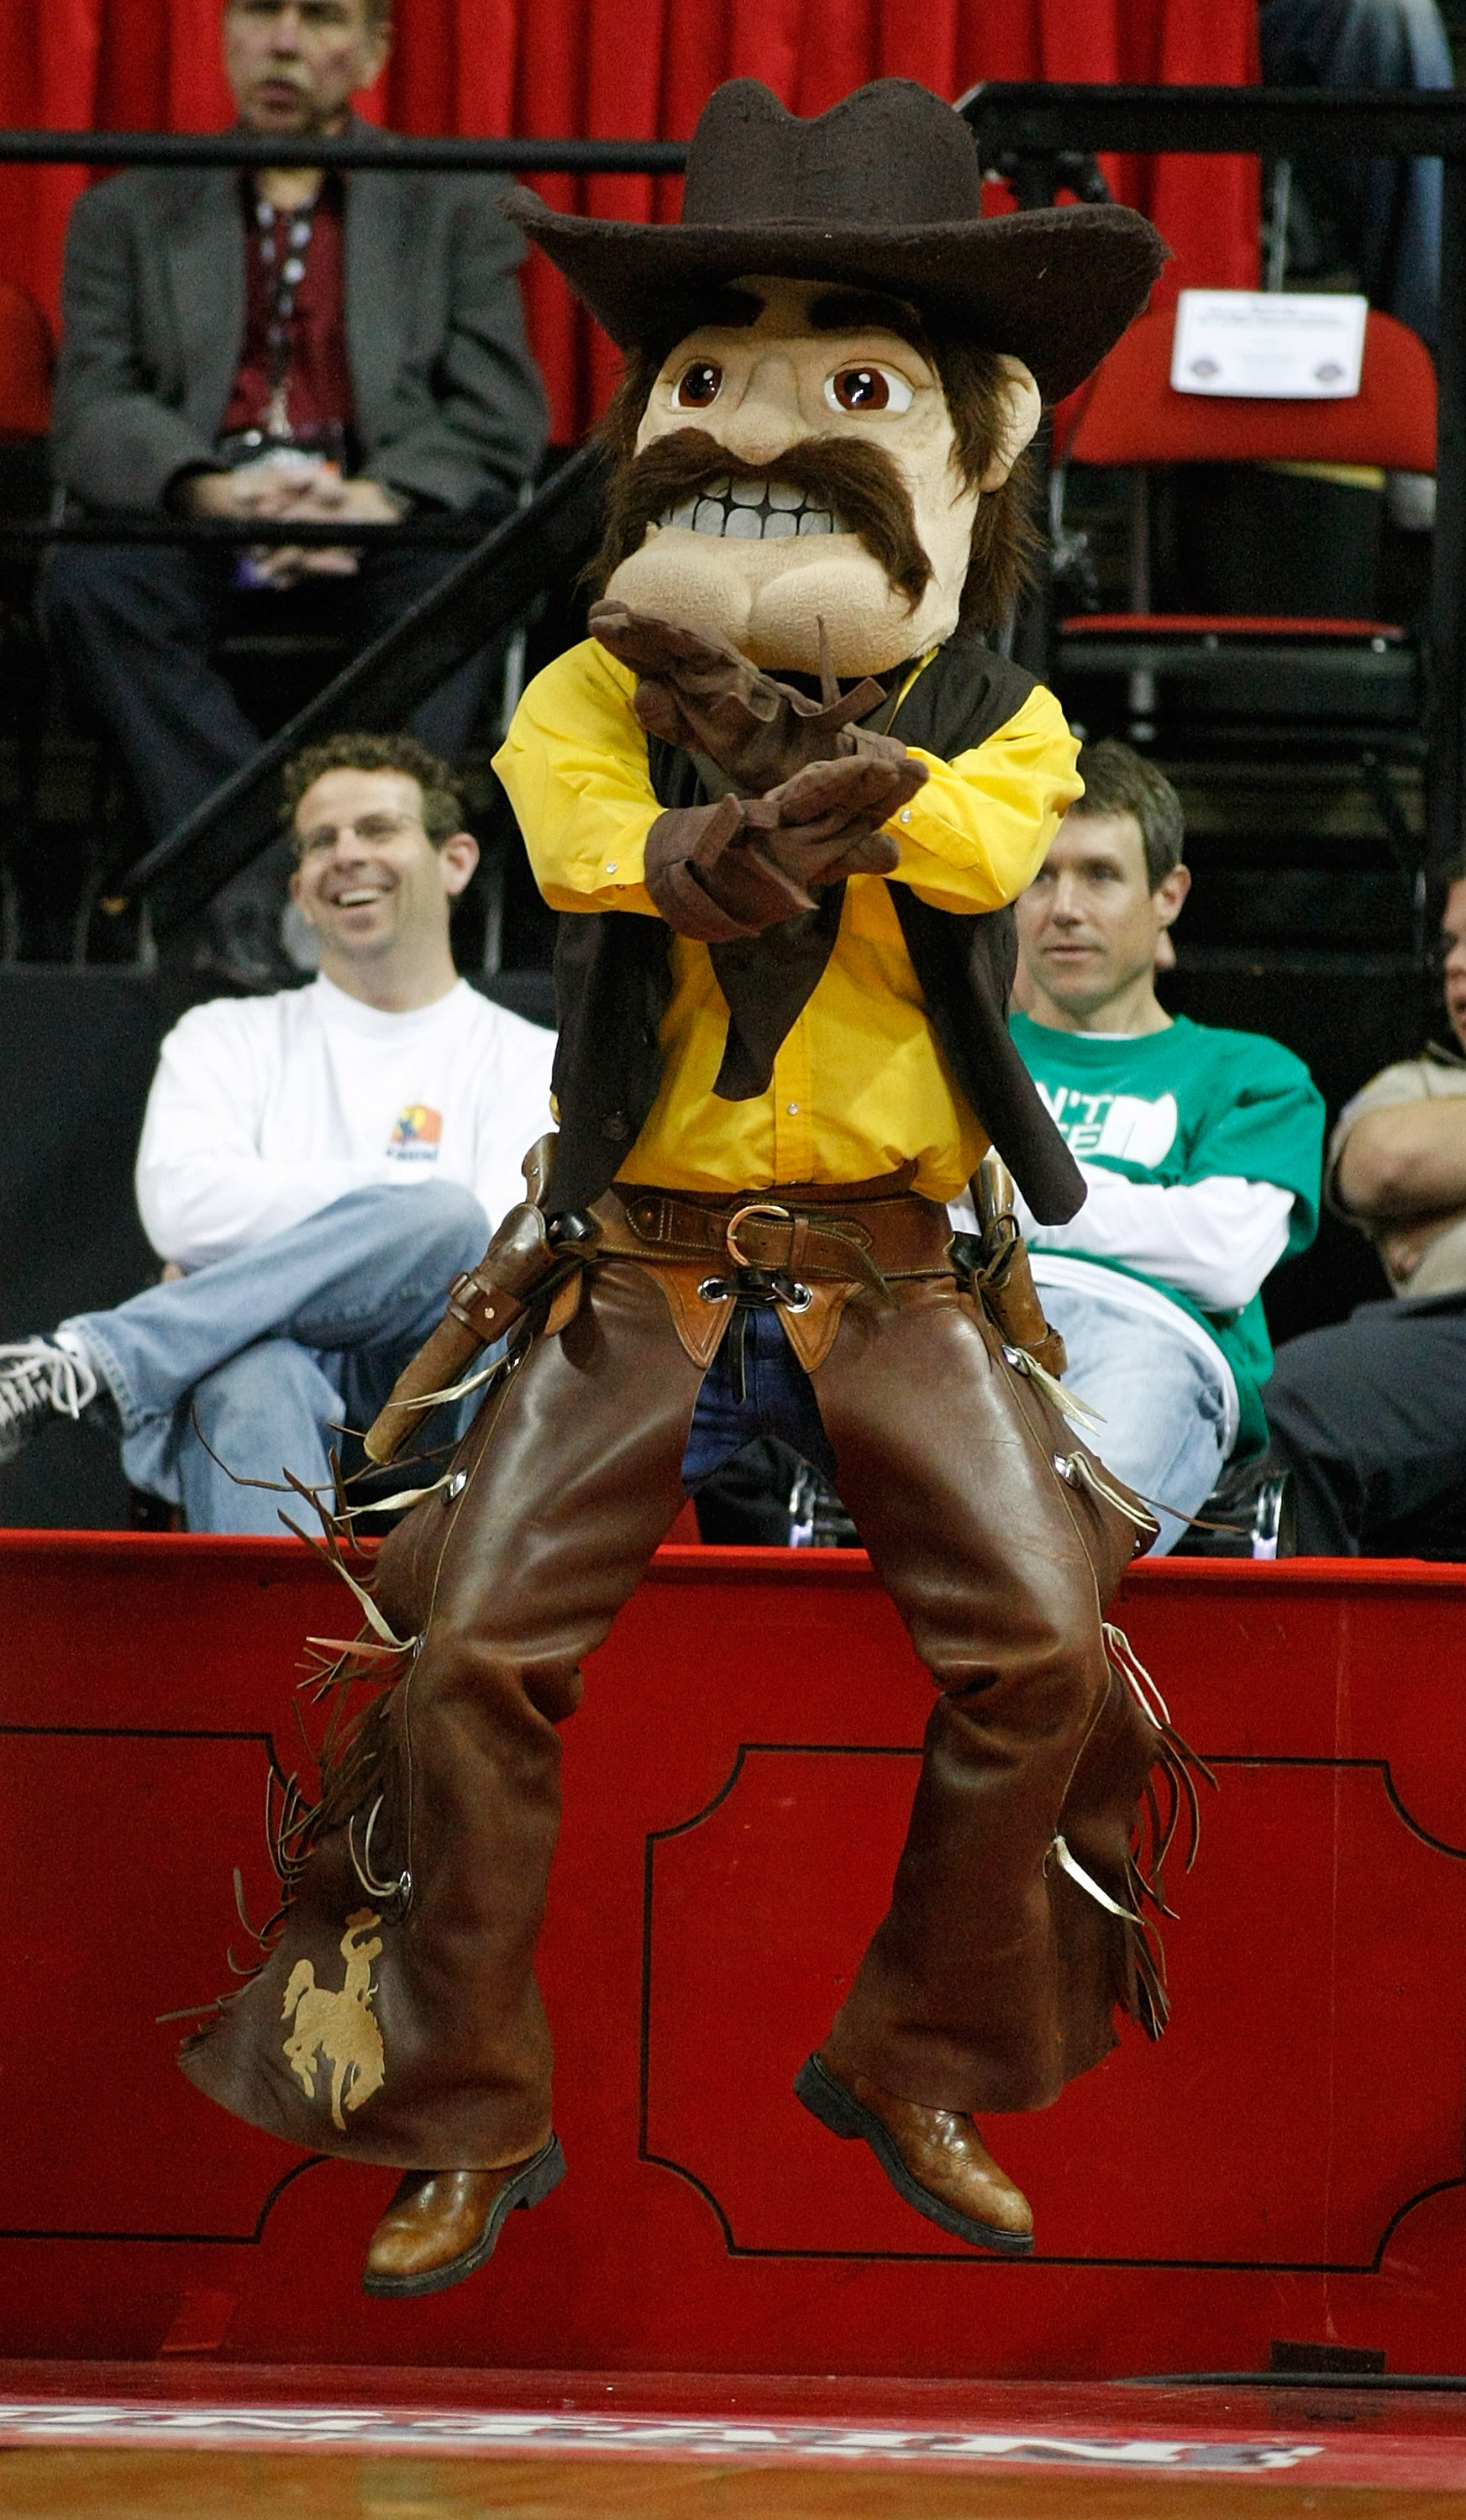 LAS VEGAS - MARCH 13:  Wyoming Cowboys mascot 'Pistol Pete' jumps in the air during a semifinal game against the Utah Utes during a semifinal game of the Conoco Mountain West Conference Basketball Championships at the Thomas & Mack Center March 13, 2009 i